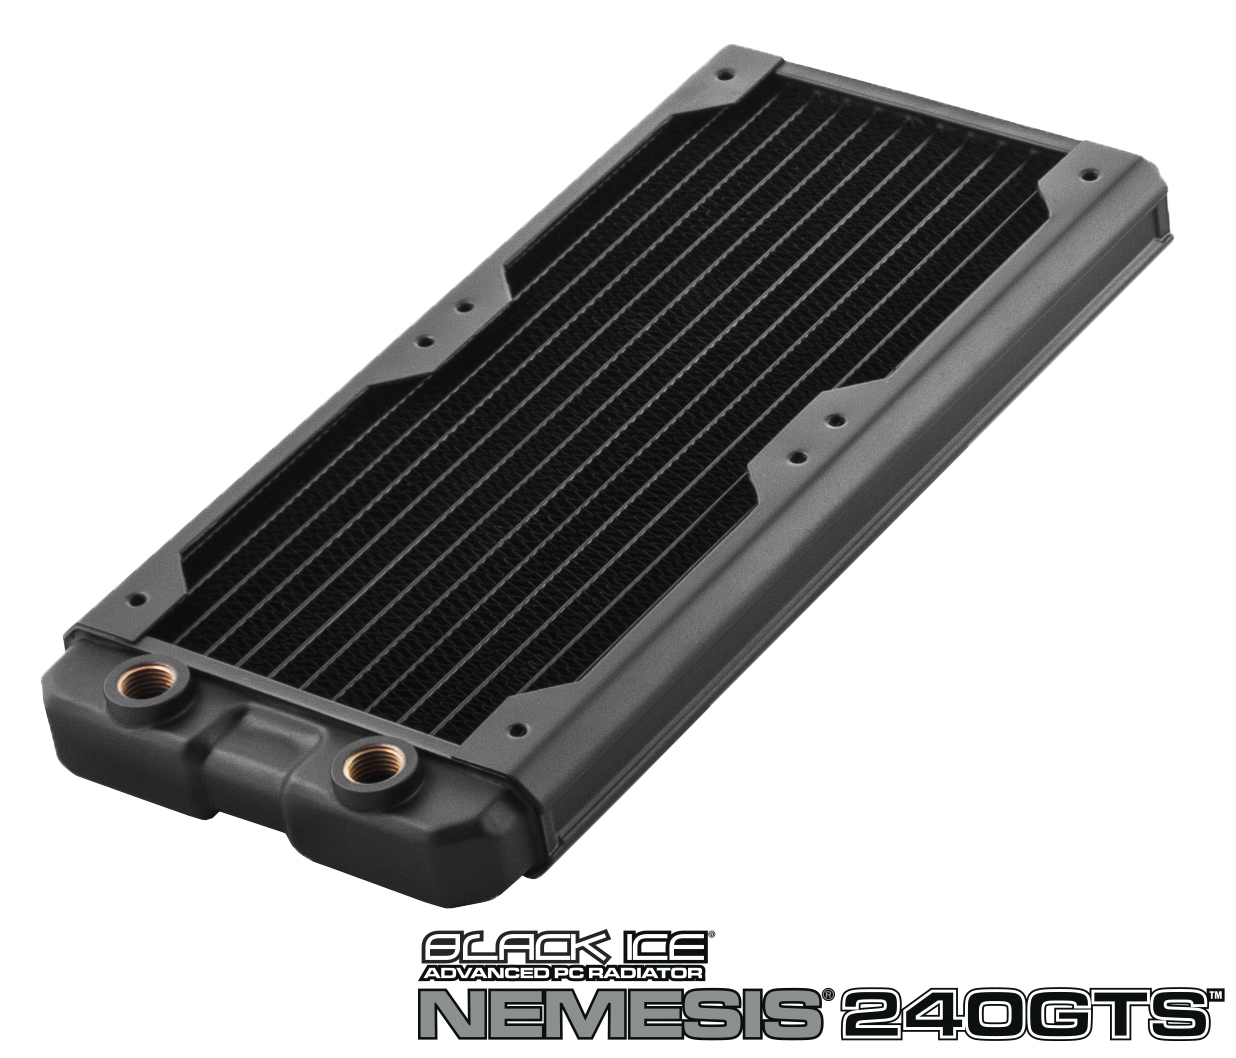 Hardware Labs - Black Ice Nemesis Radiator GTS 240 - Black